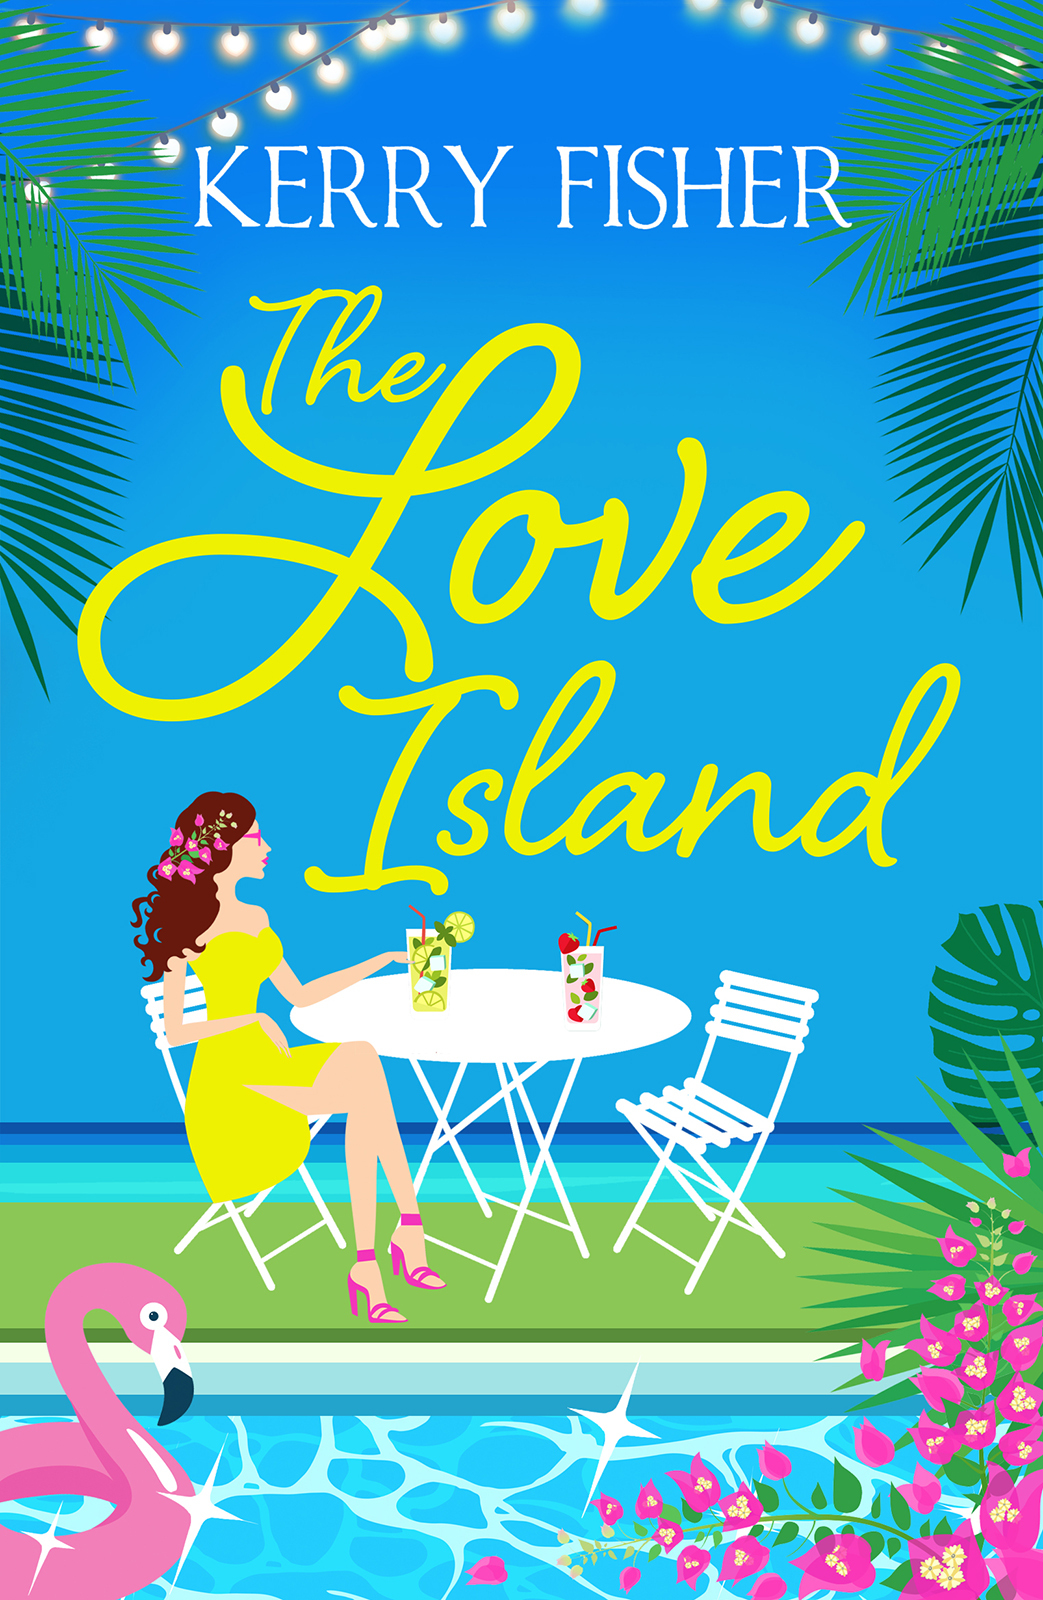 Kerry Fisher The Love Island: The laugh out loud romantic comedy you have to read this summer ultra loud bicycle air horn truck siren sound 120db